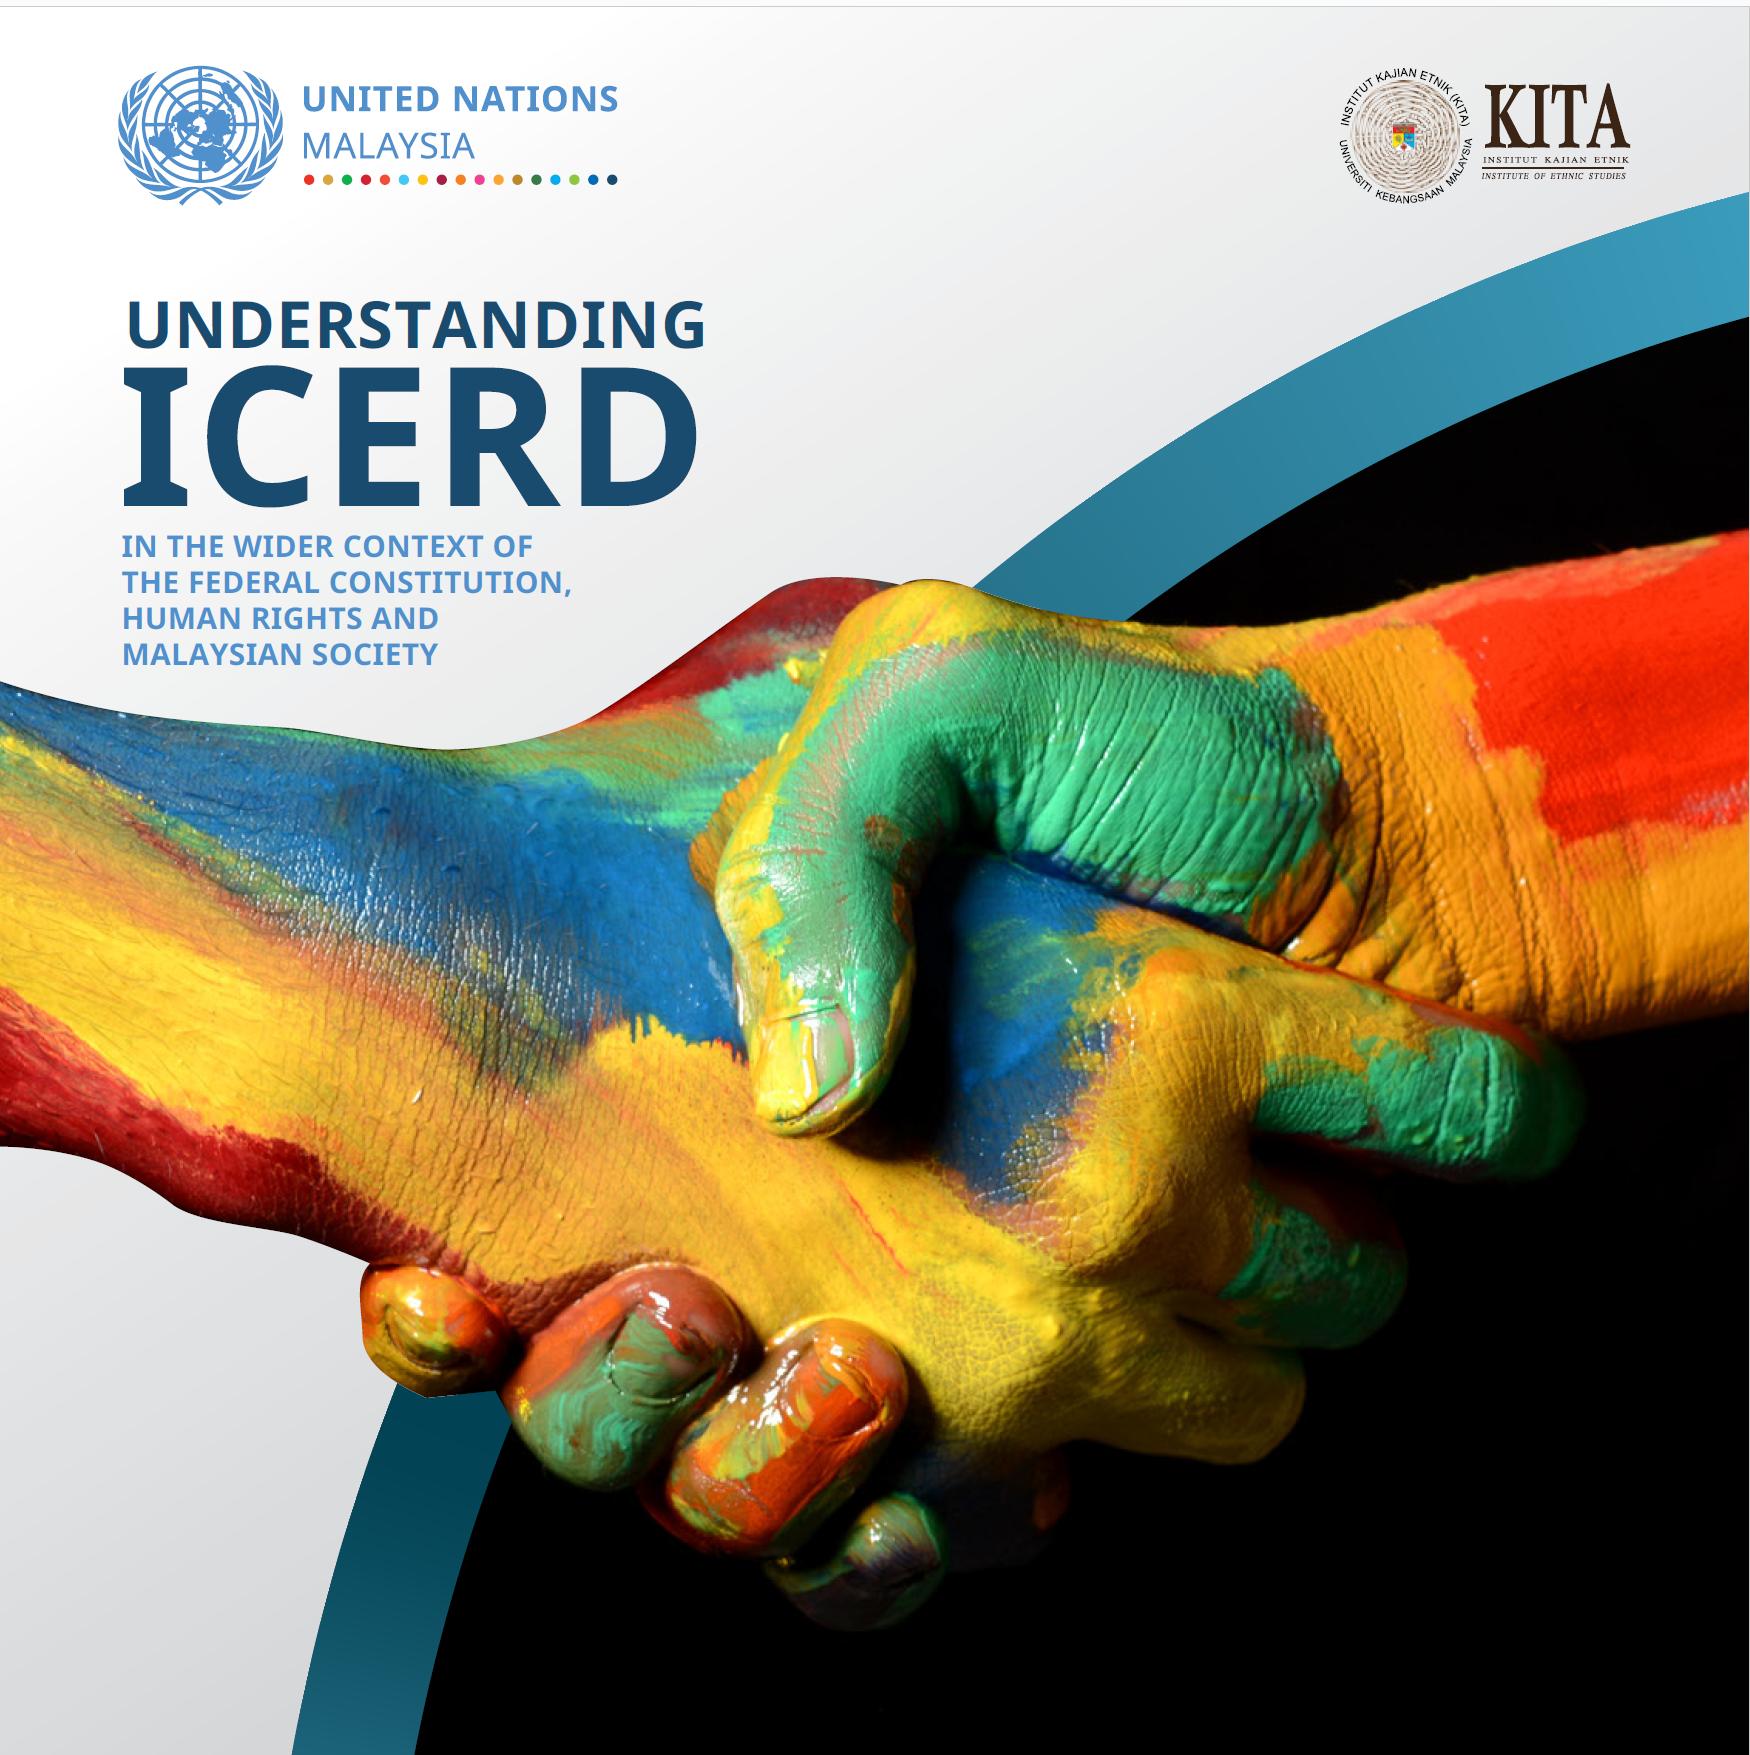 Understanding ICERD in the wider context of the Federal Constitution, Human Rights and Malaysian society